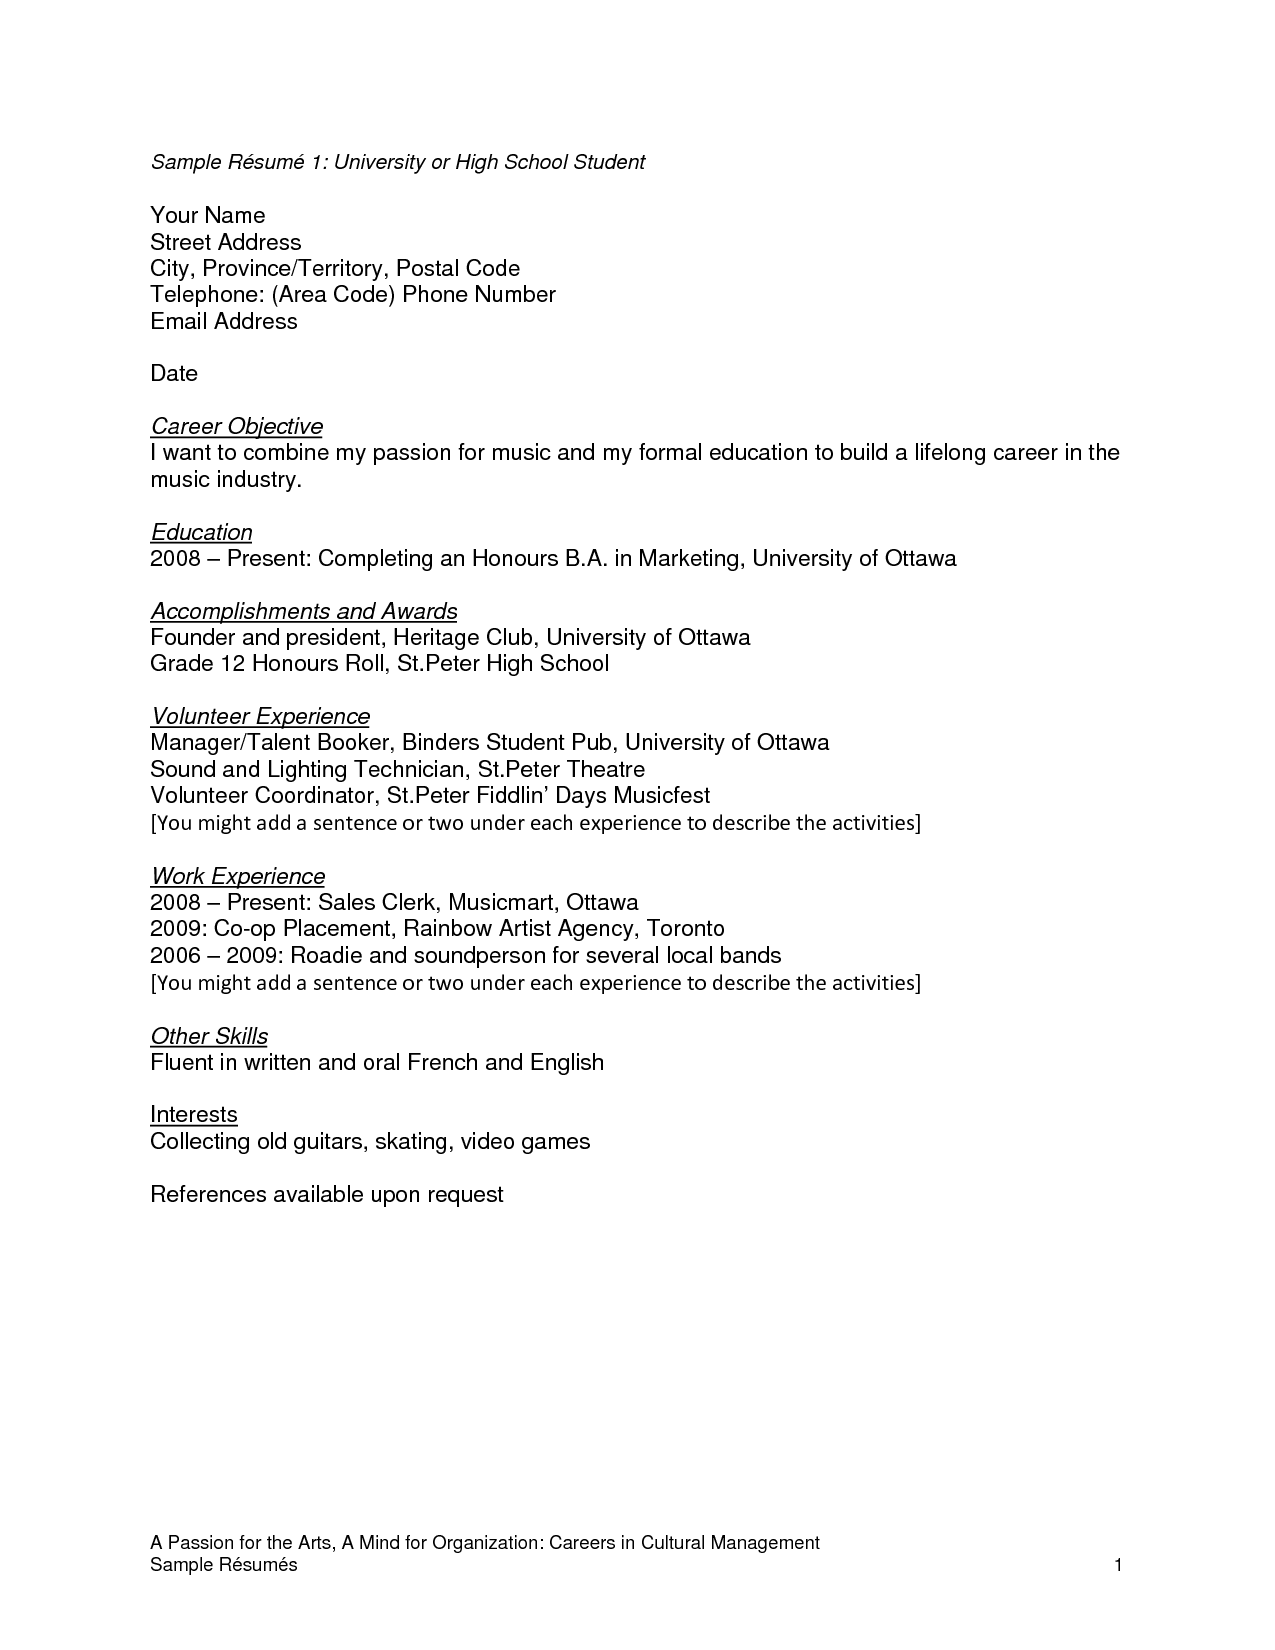 Resume Templates For High School Students High School Student Resume Templates  Httpwwwresumecareer